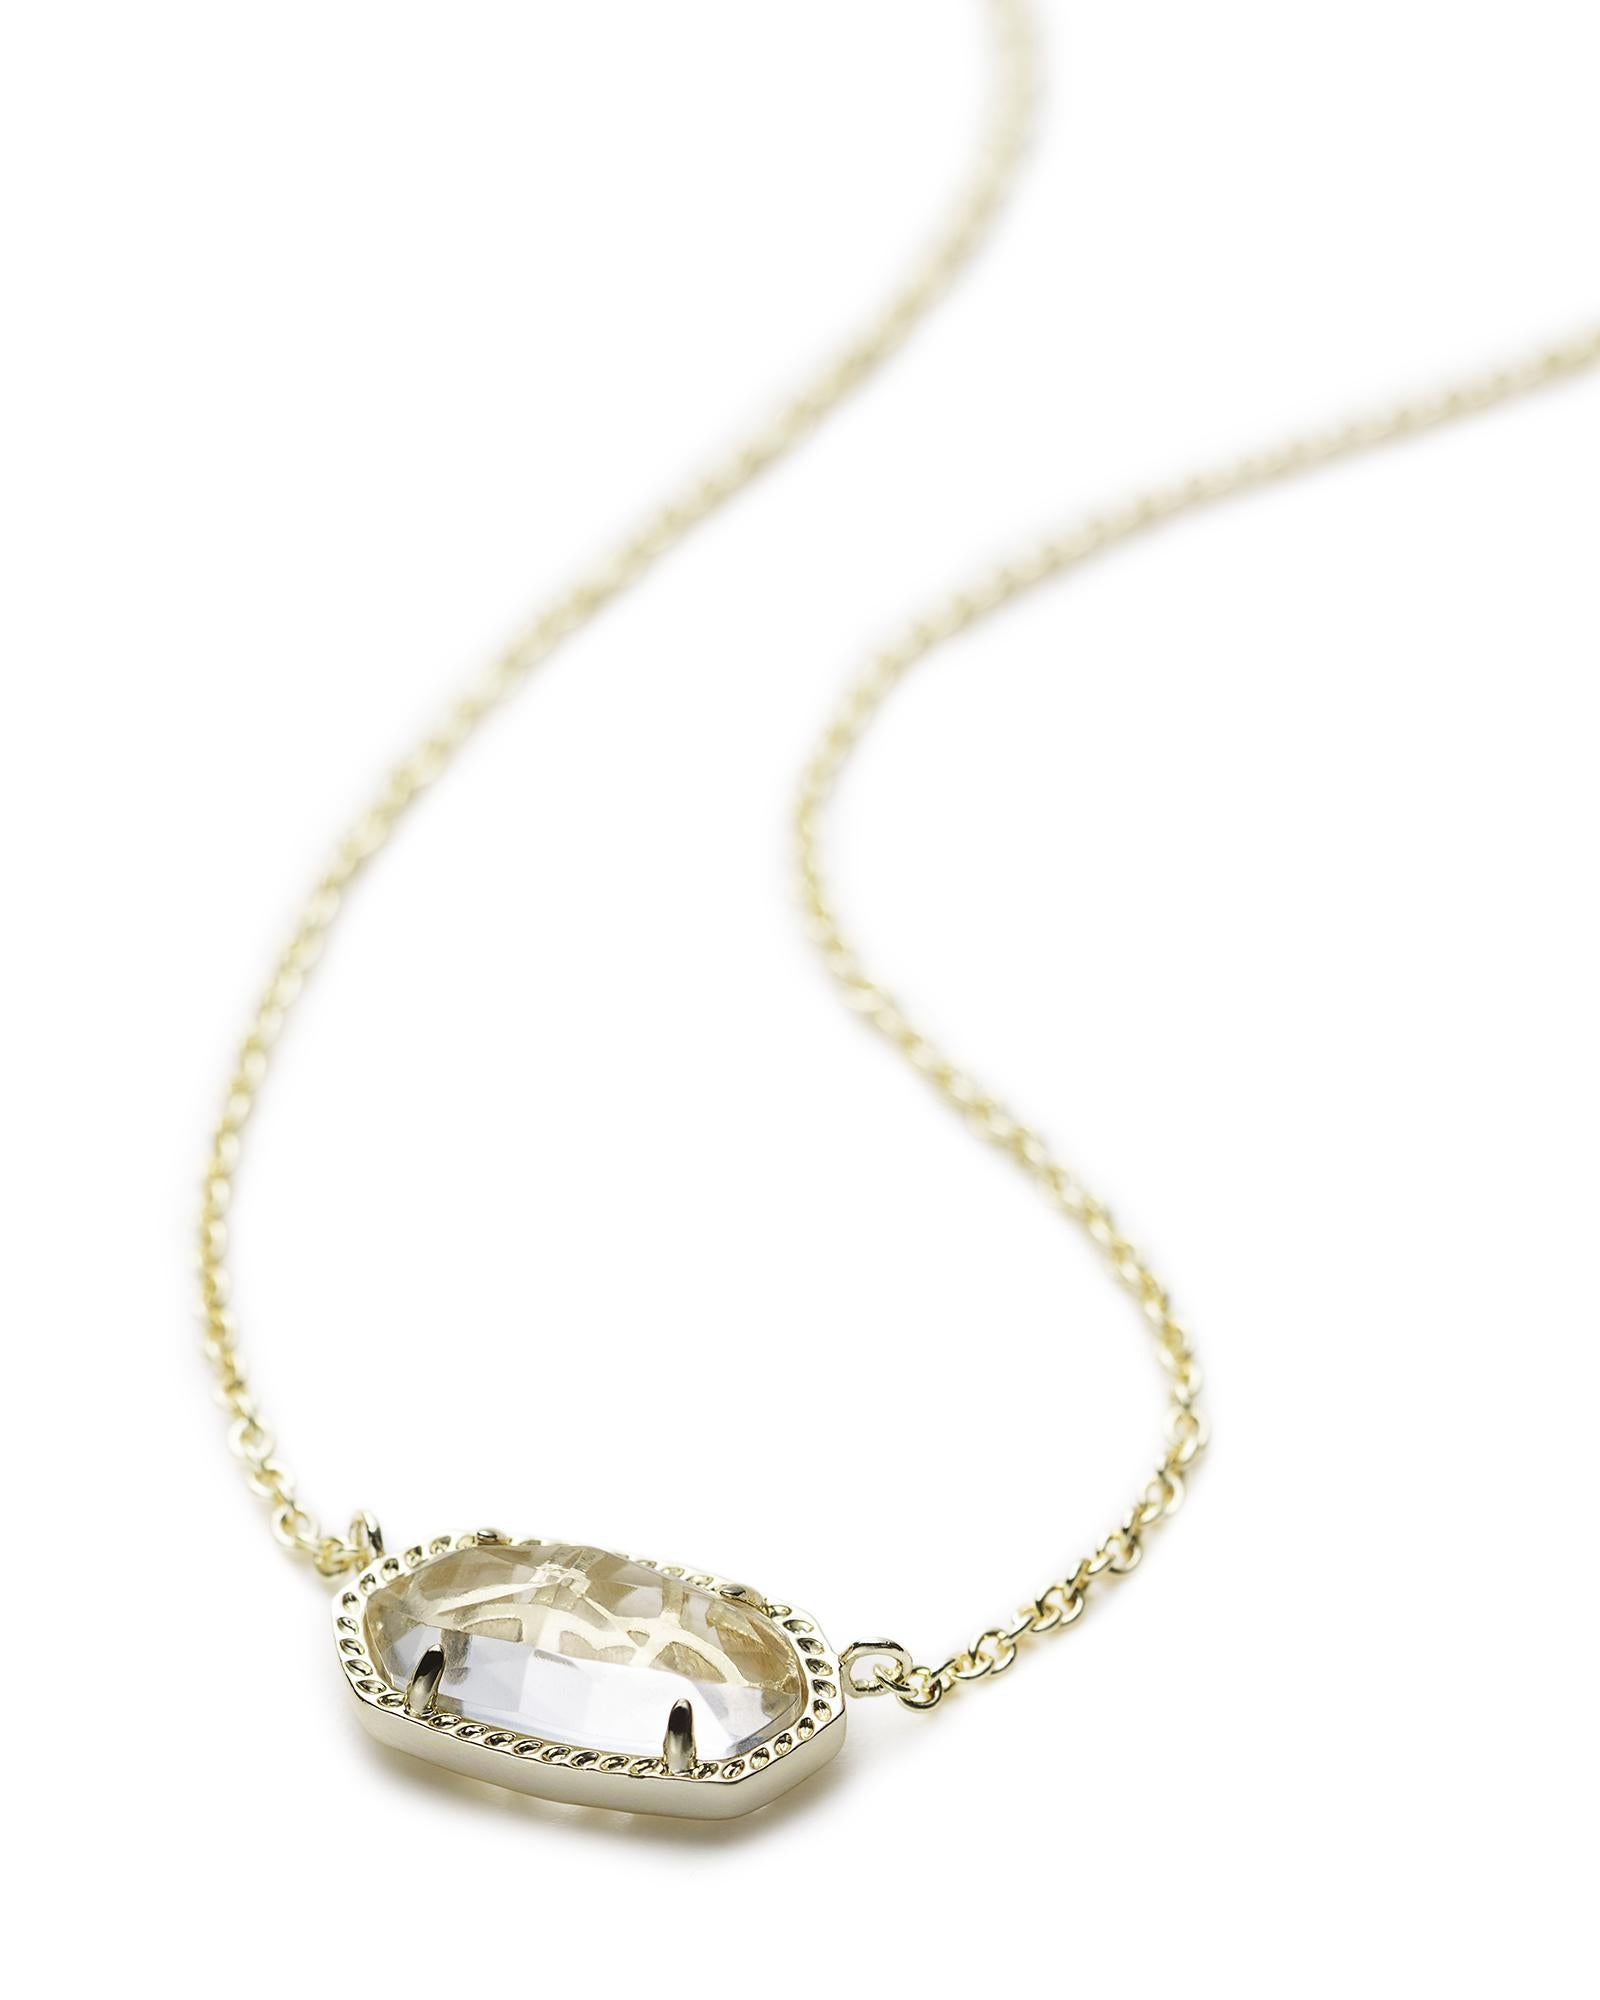 beautiful pendant on chain il gold listing necklace crystal with clear gift fullxfull box